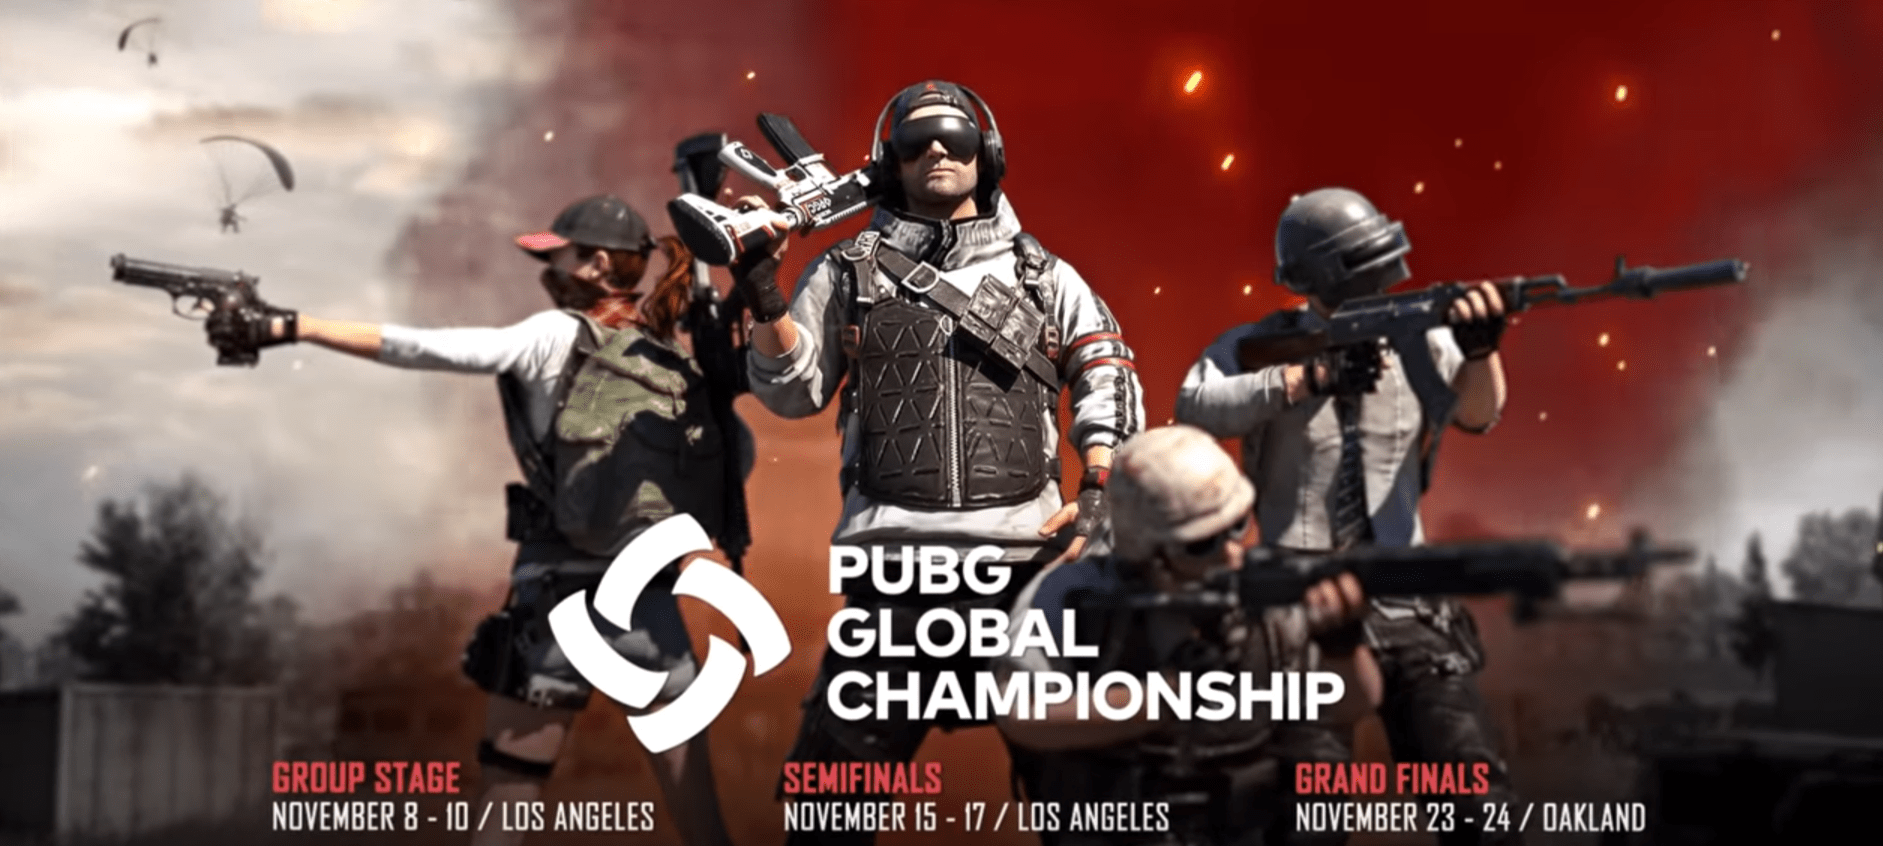 The 2019 PUBG Global Championship Kicks Off Thing Weekend – Here Is Whats At Stake and How The Tournament Is Formatted